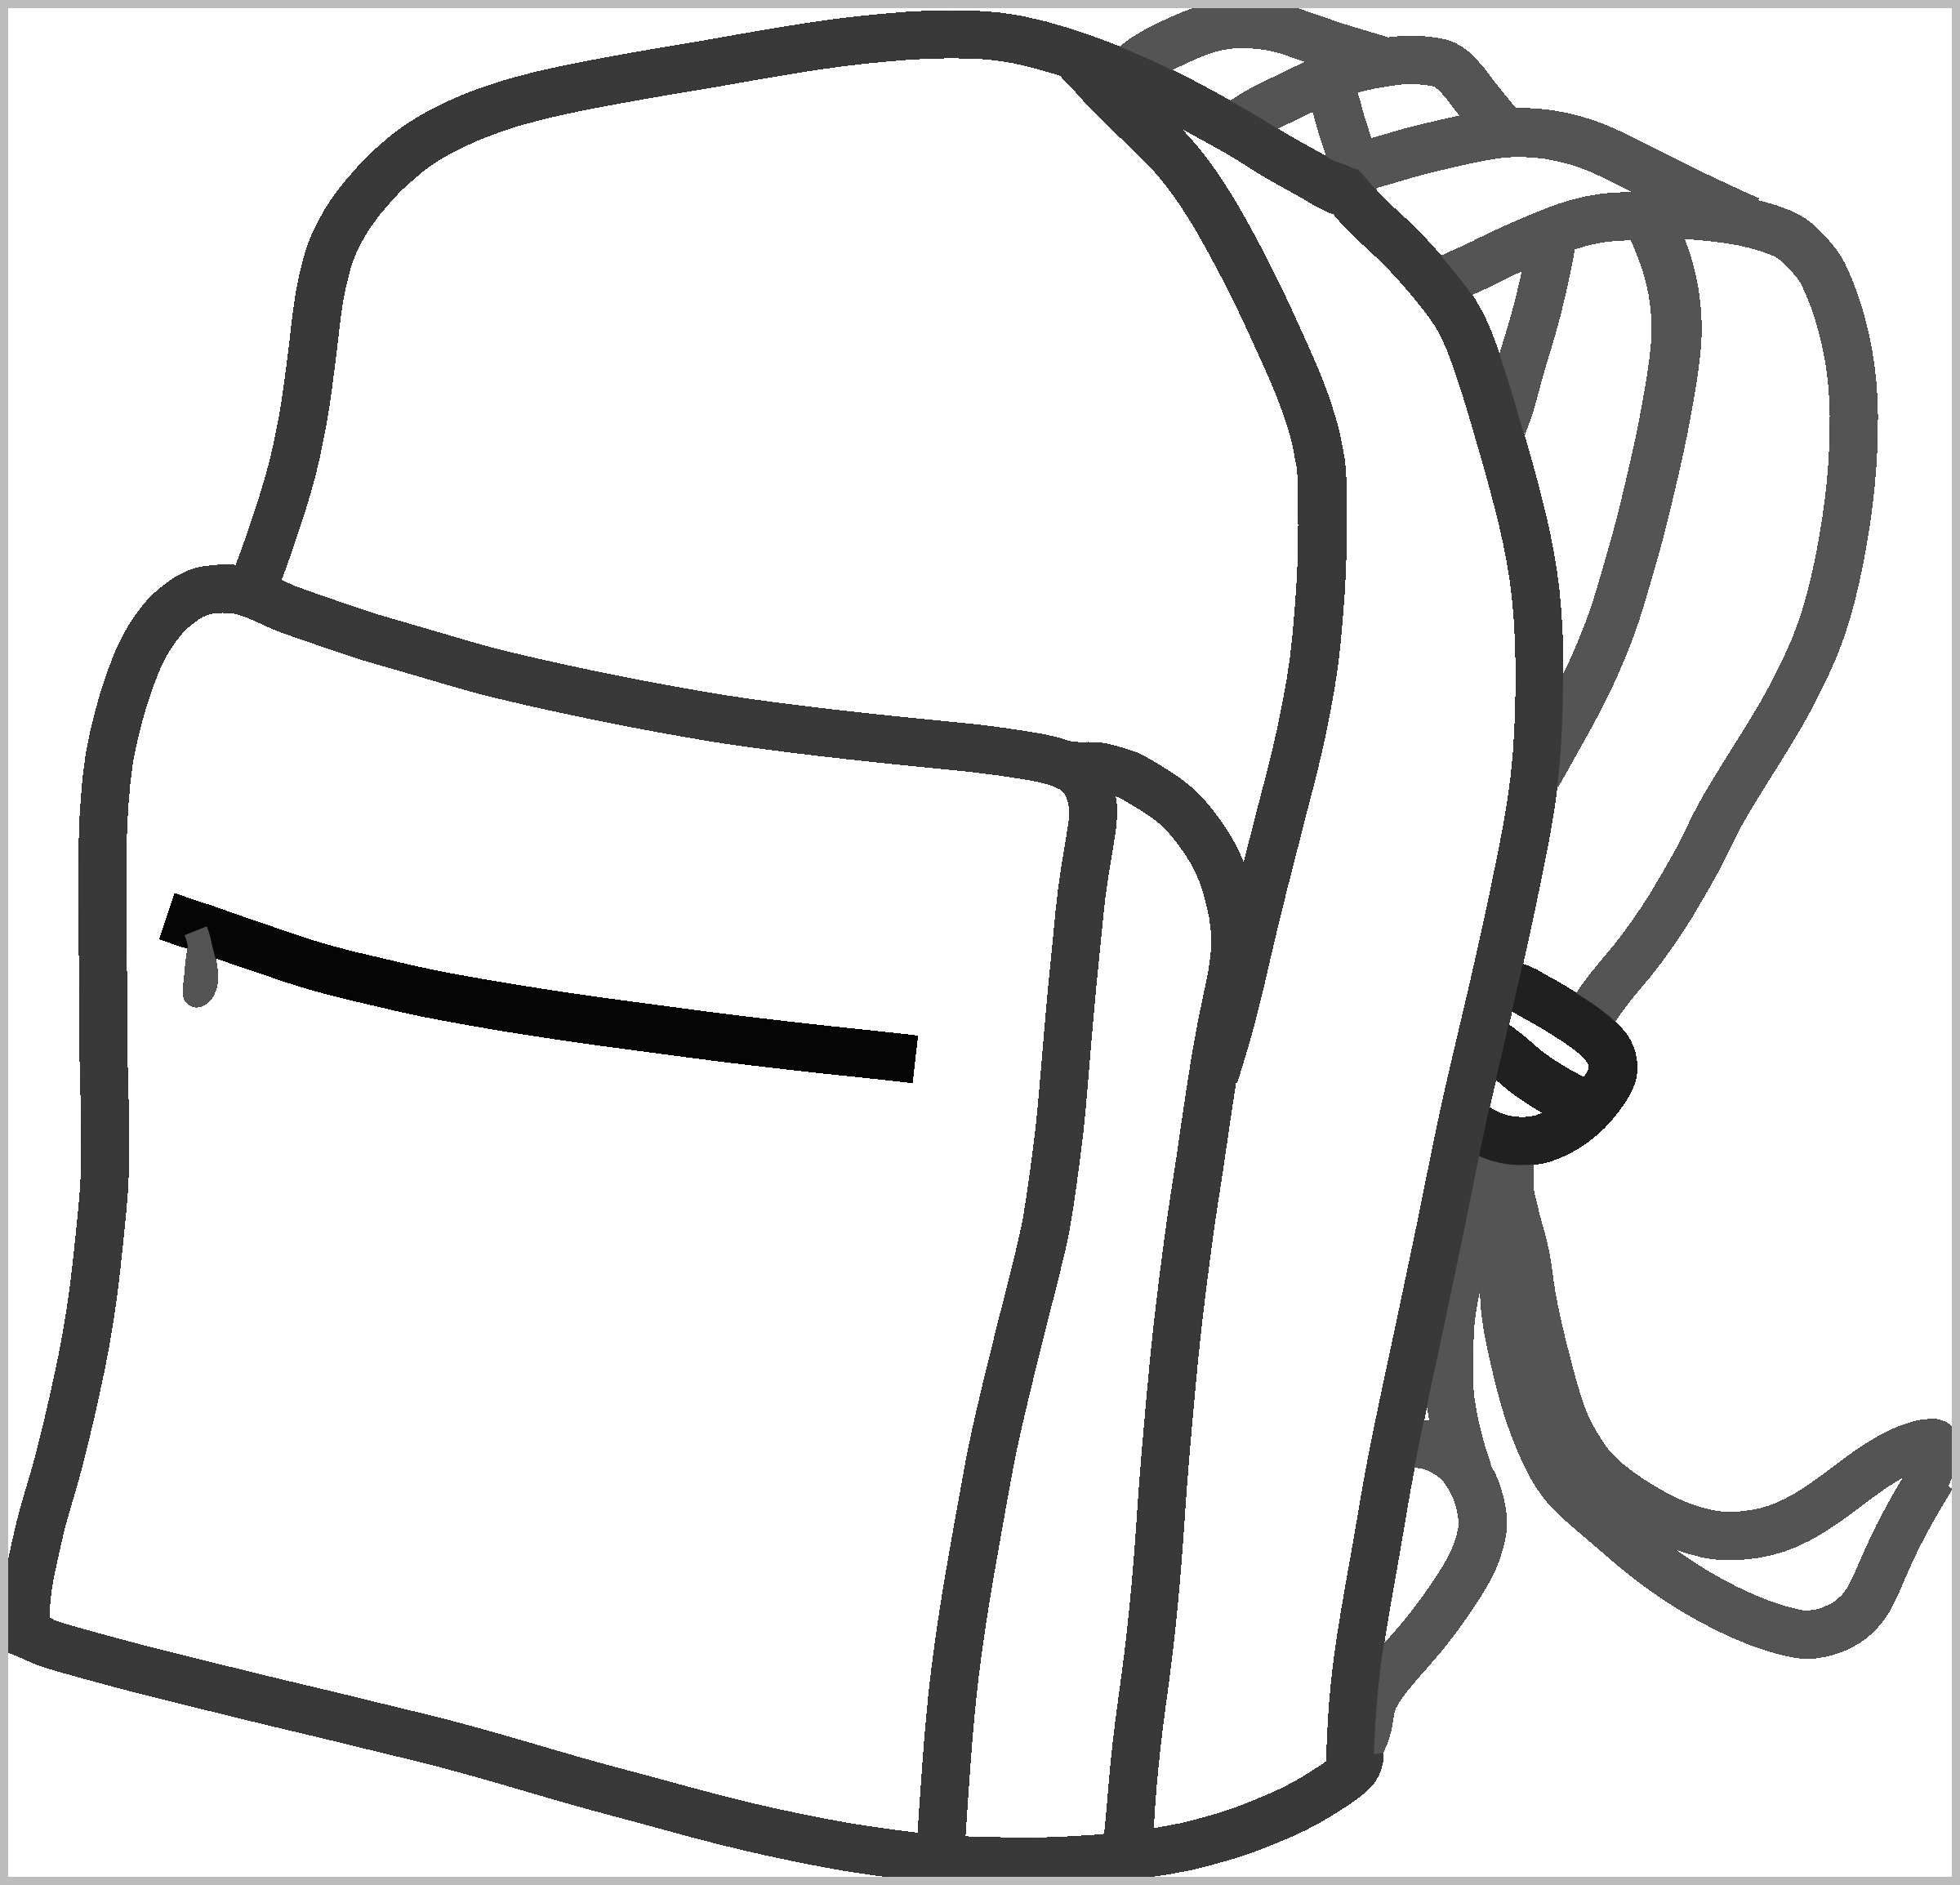 Backpack Coloring Page Backpack Coloring Pages Admirable Backpack Coloring Page Best Of